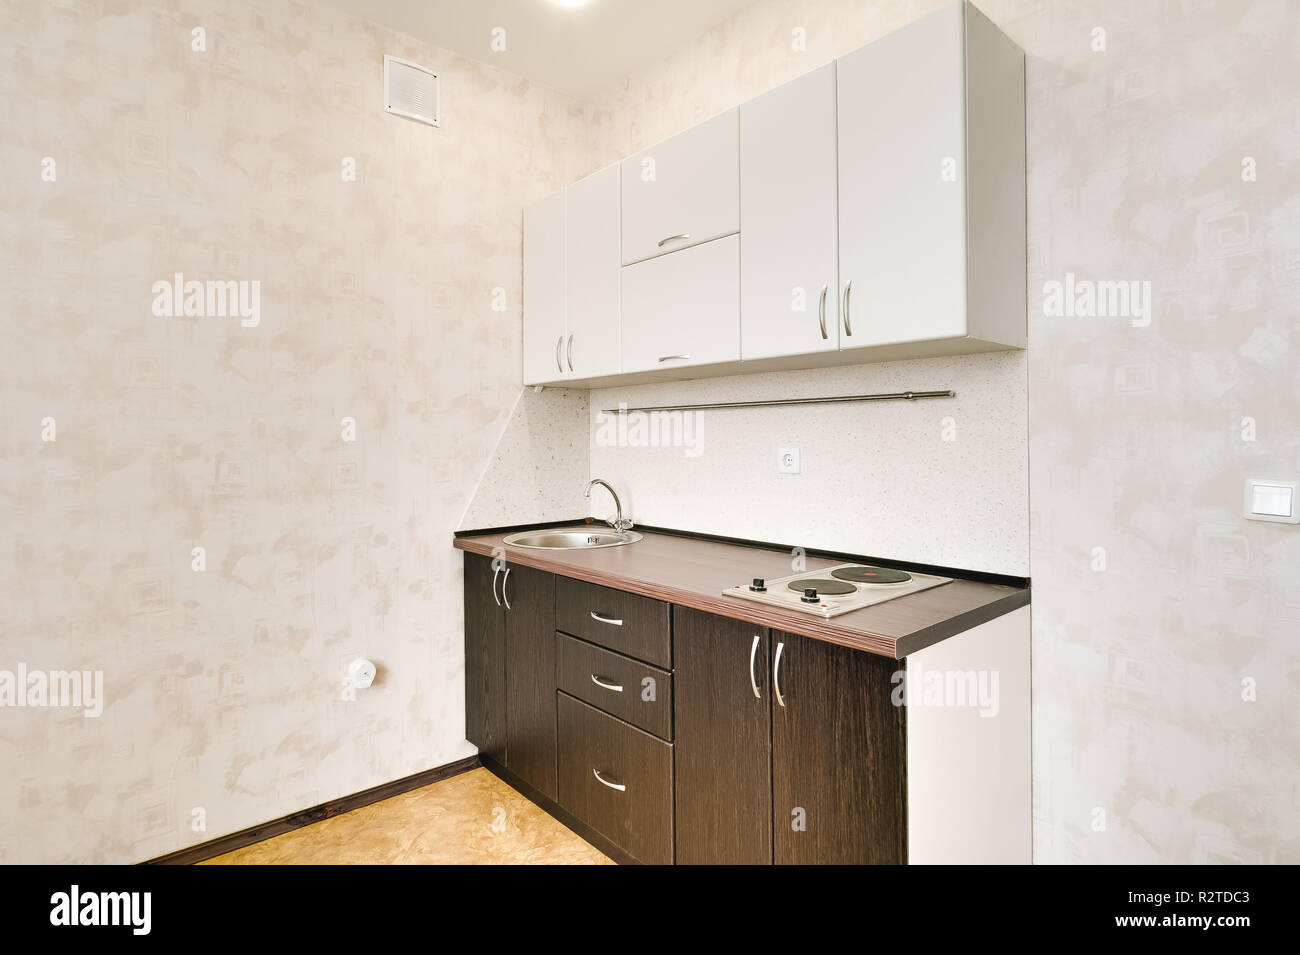 Interior in a small studio apartment kitchen set repair in a new building